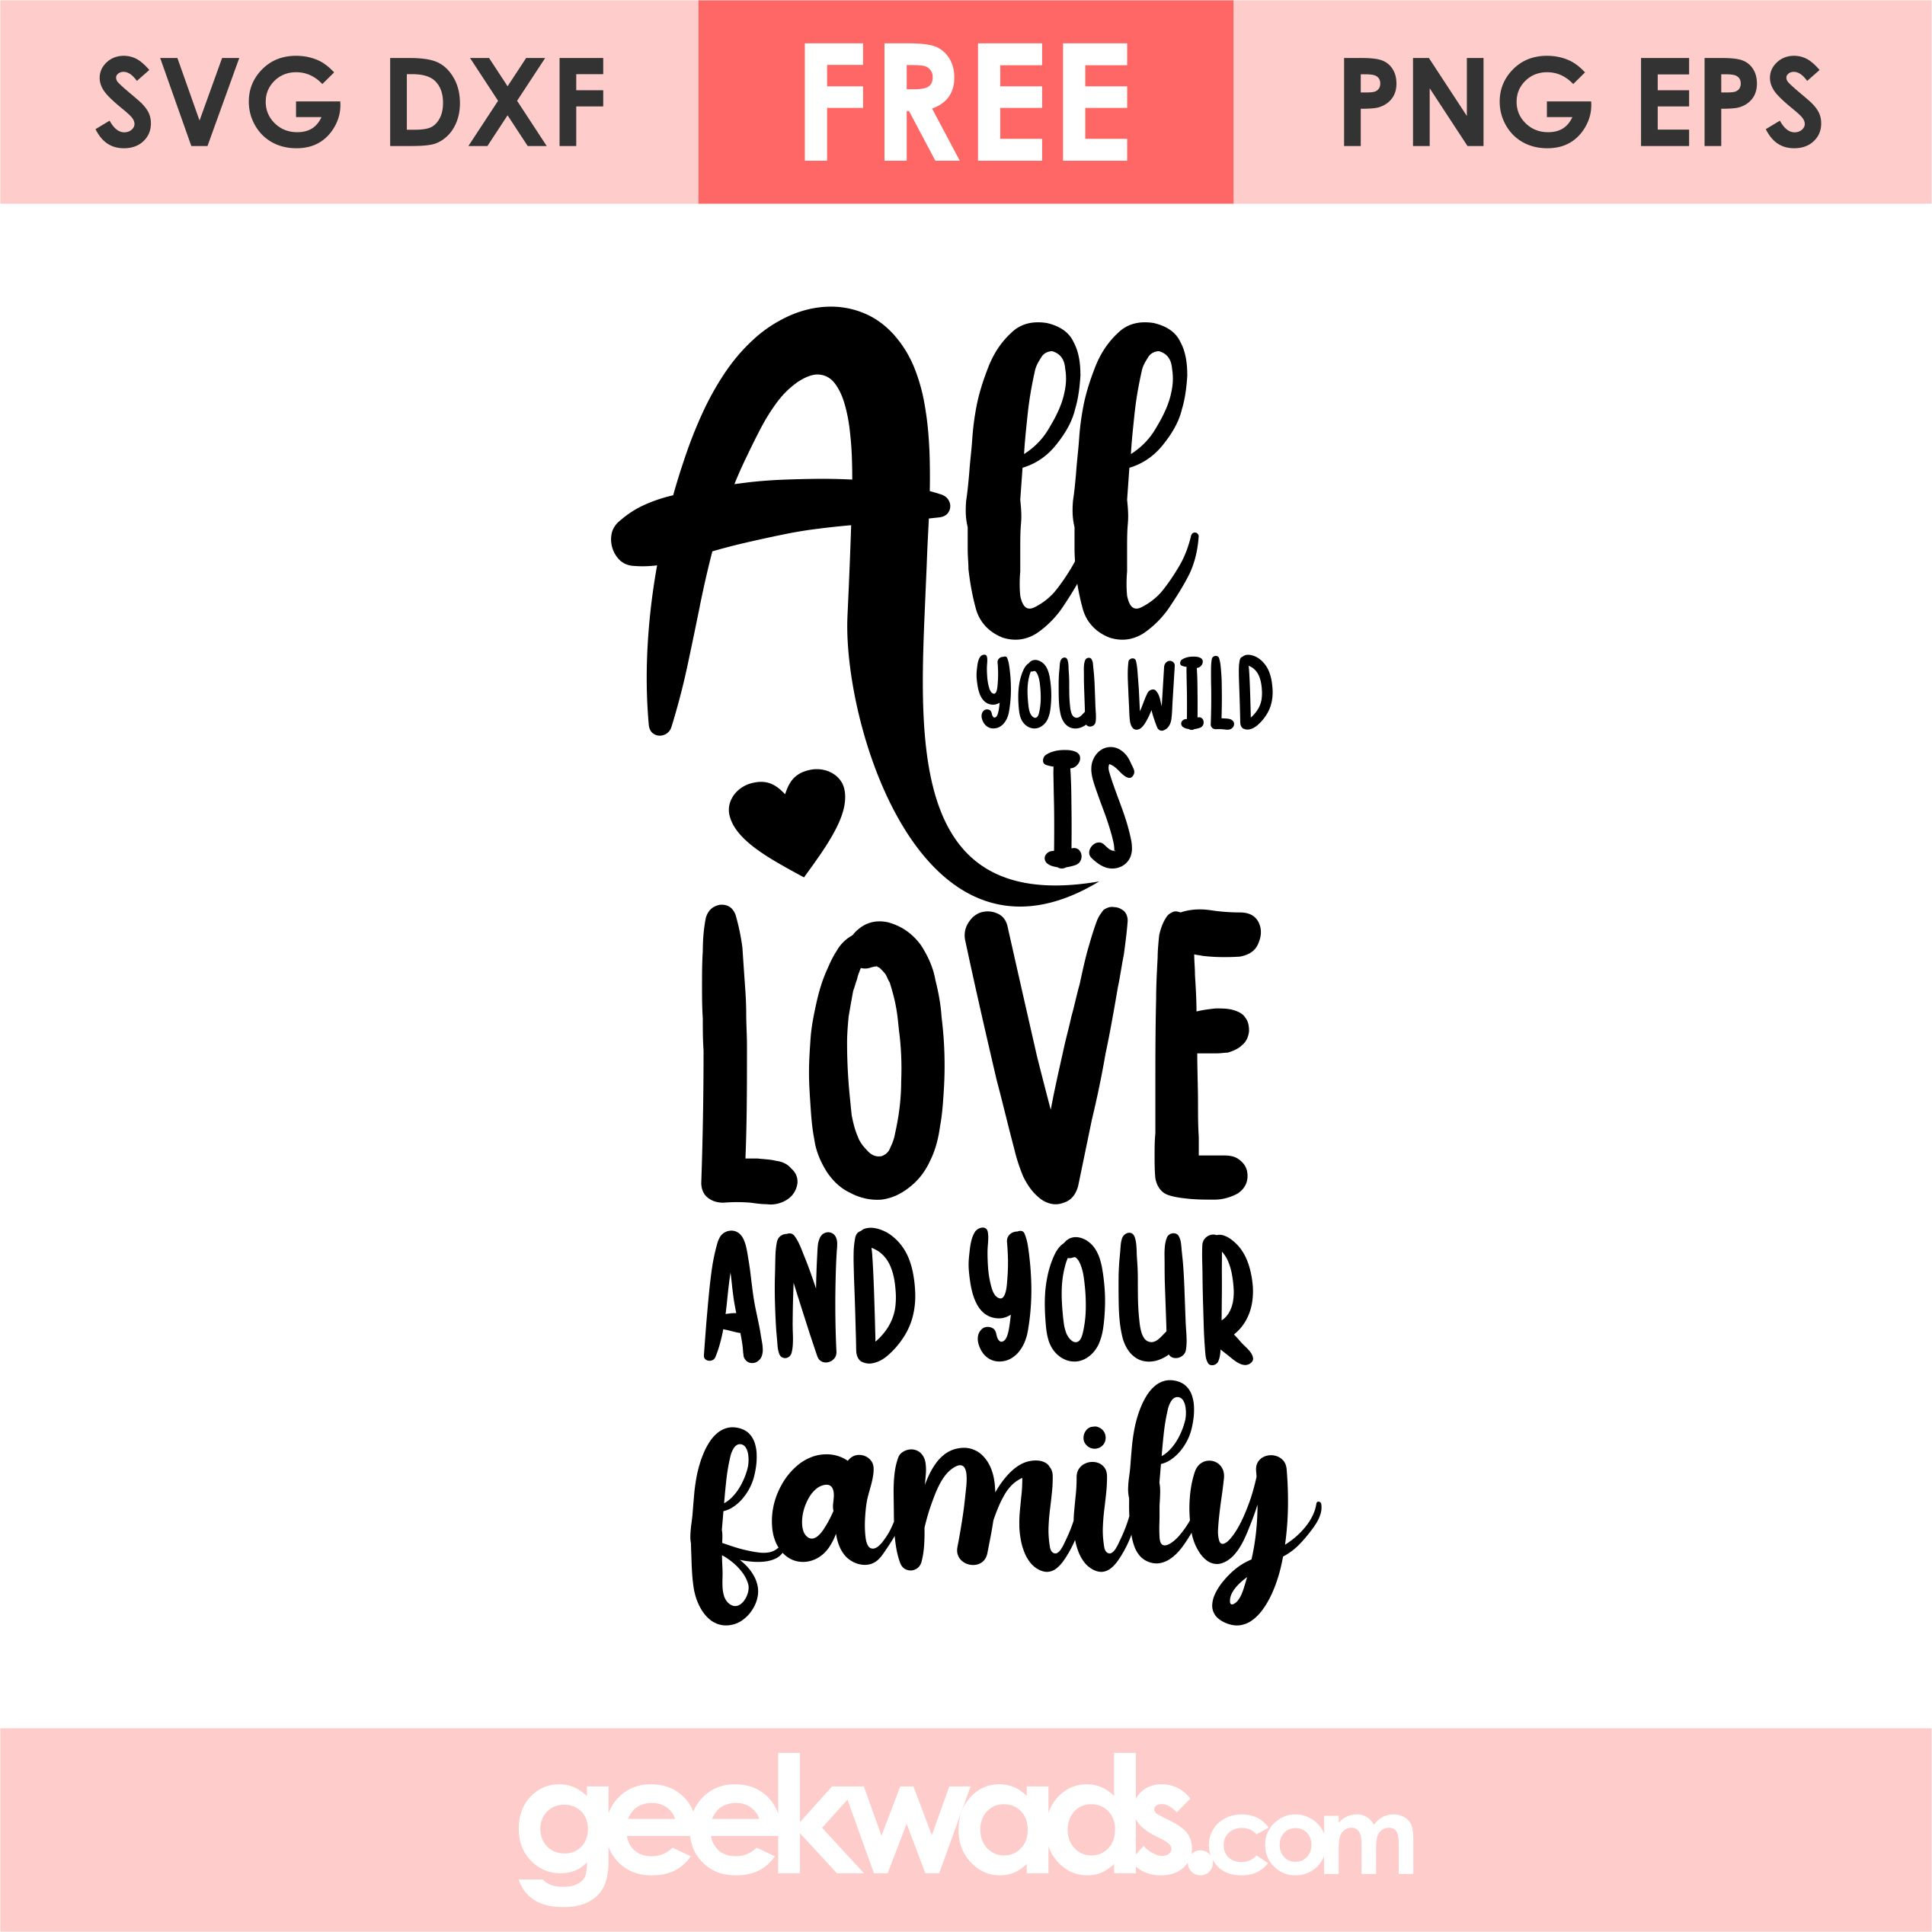 All you wild is Love and Your Family svg